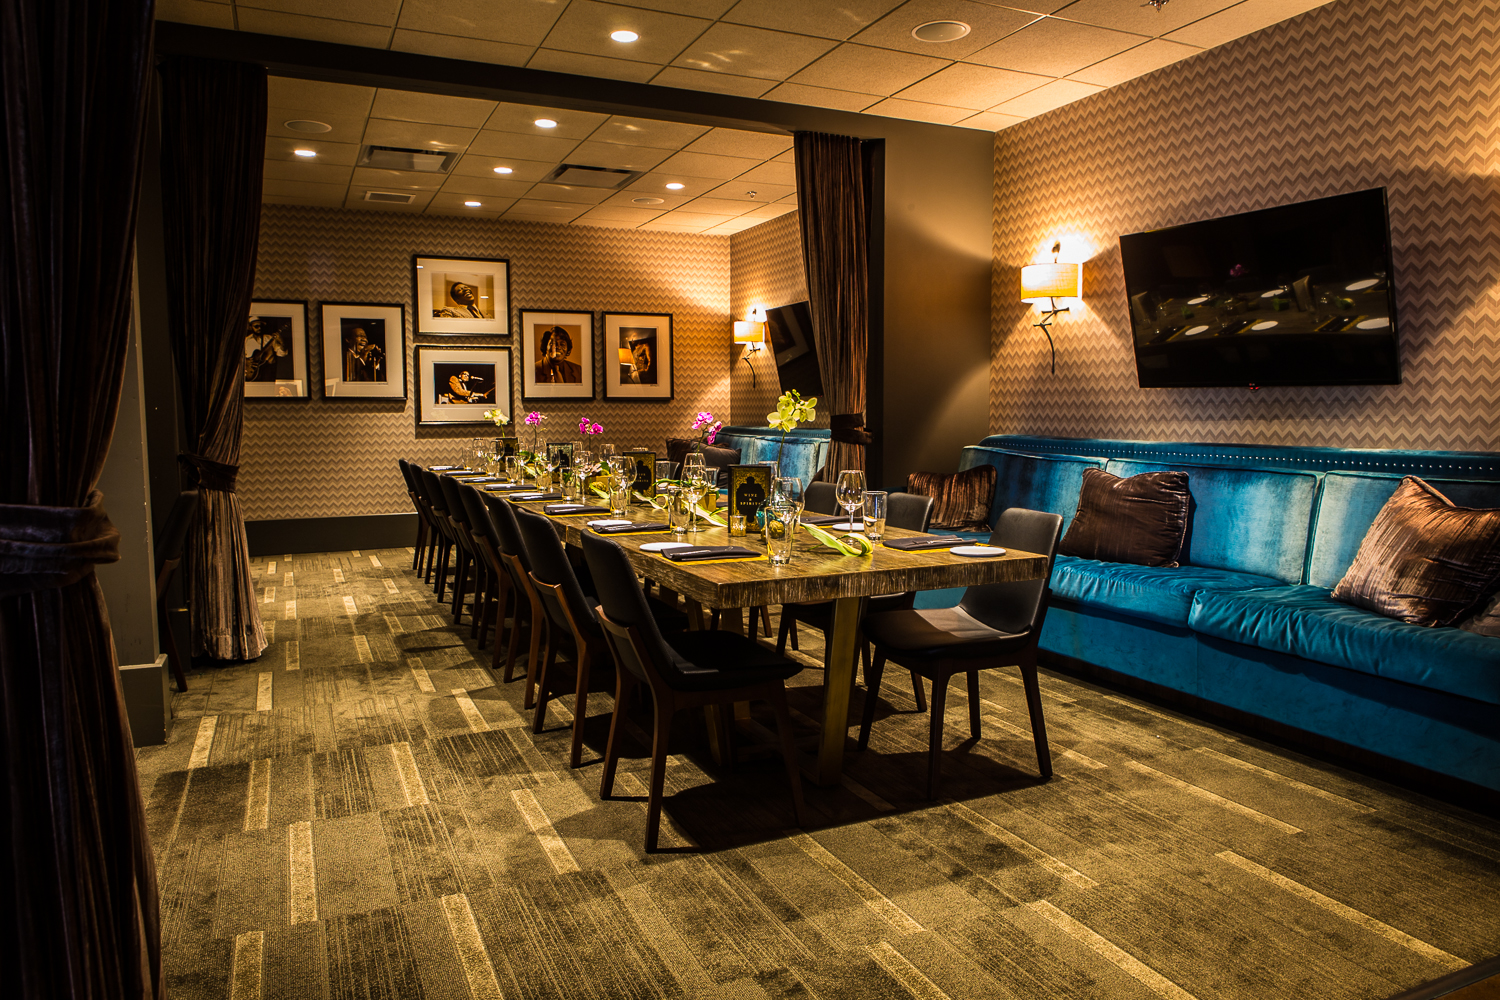 Private Dining Studio - Seats up to 24 guests. Adjacent to Lounge & Bar on 2nd floor of venue. Perfect for intimate dinners, business meetings, and gatherings.